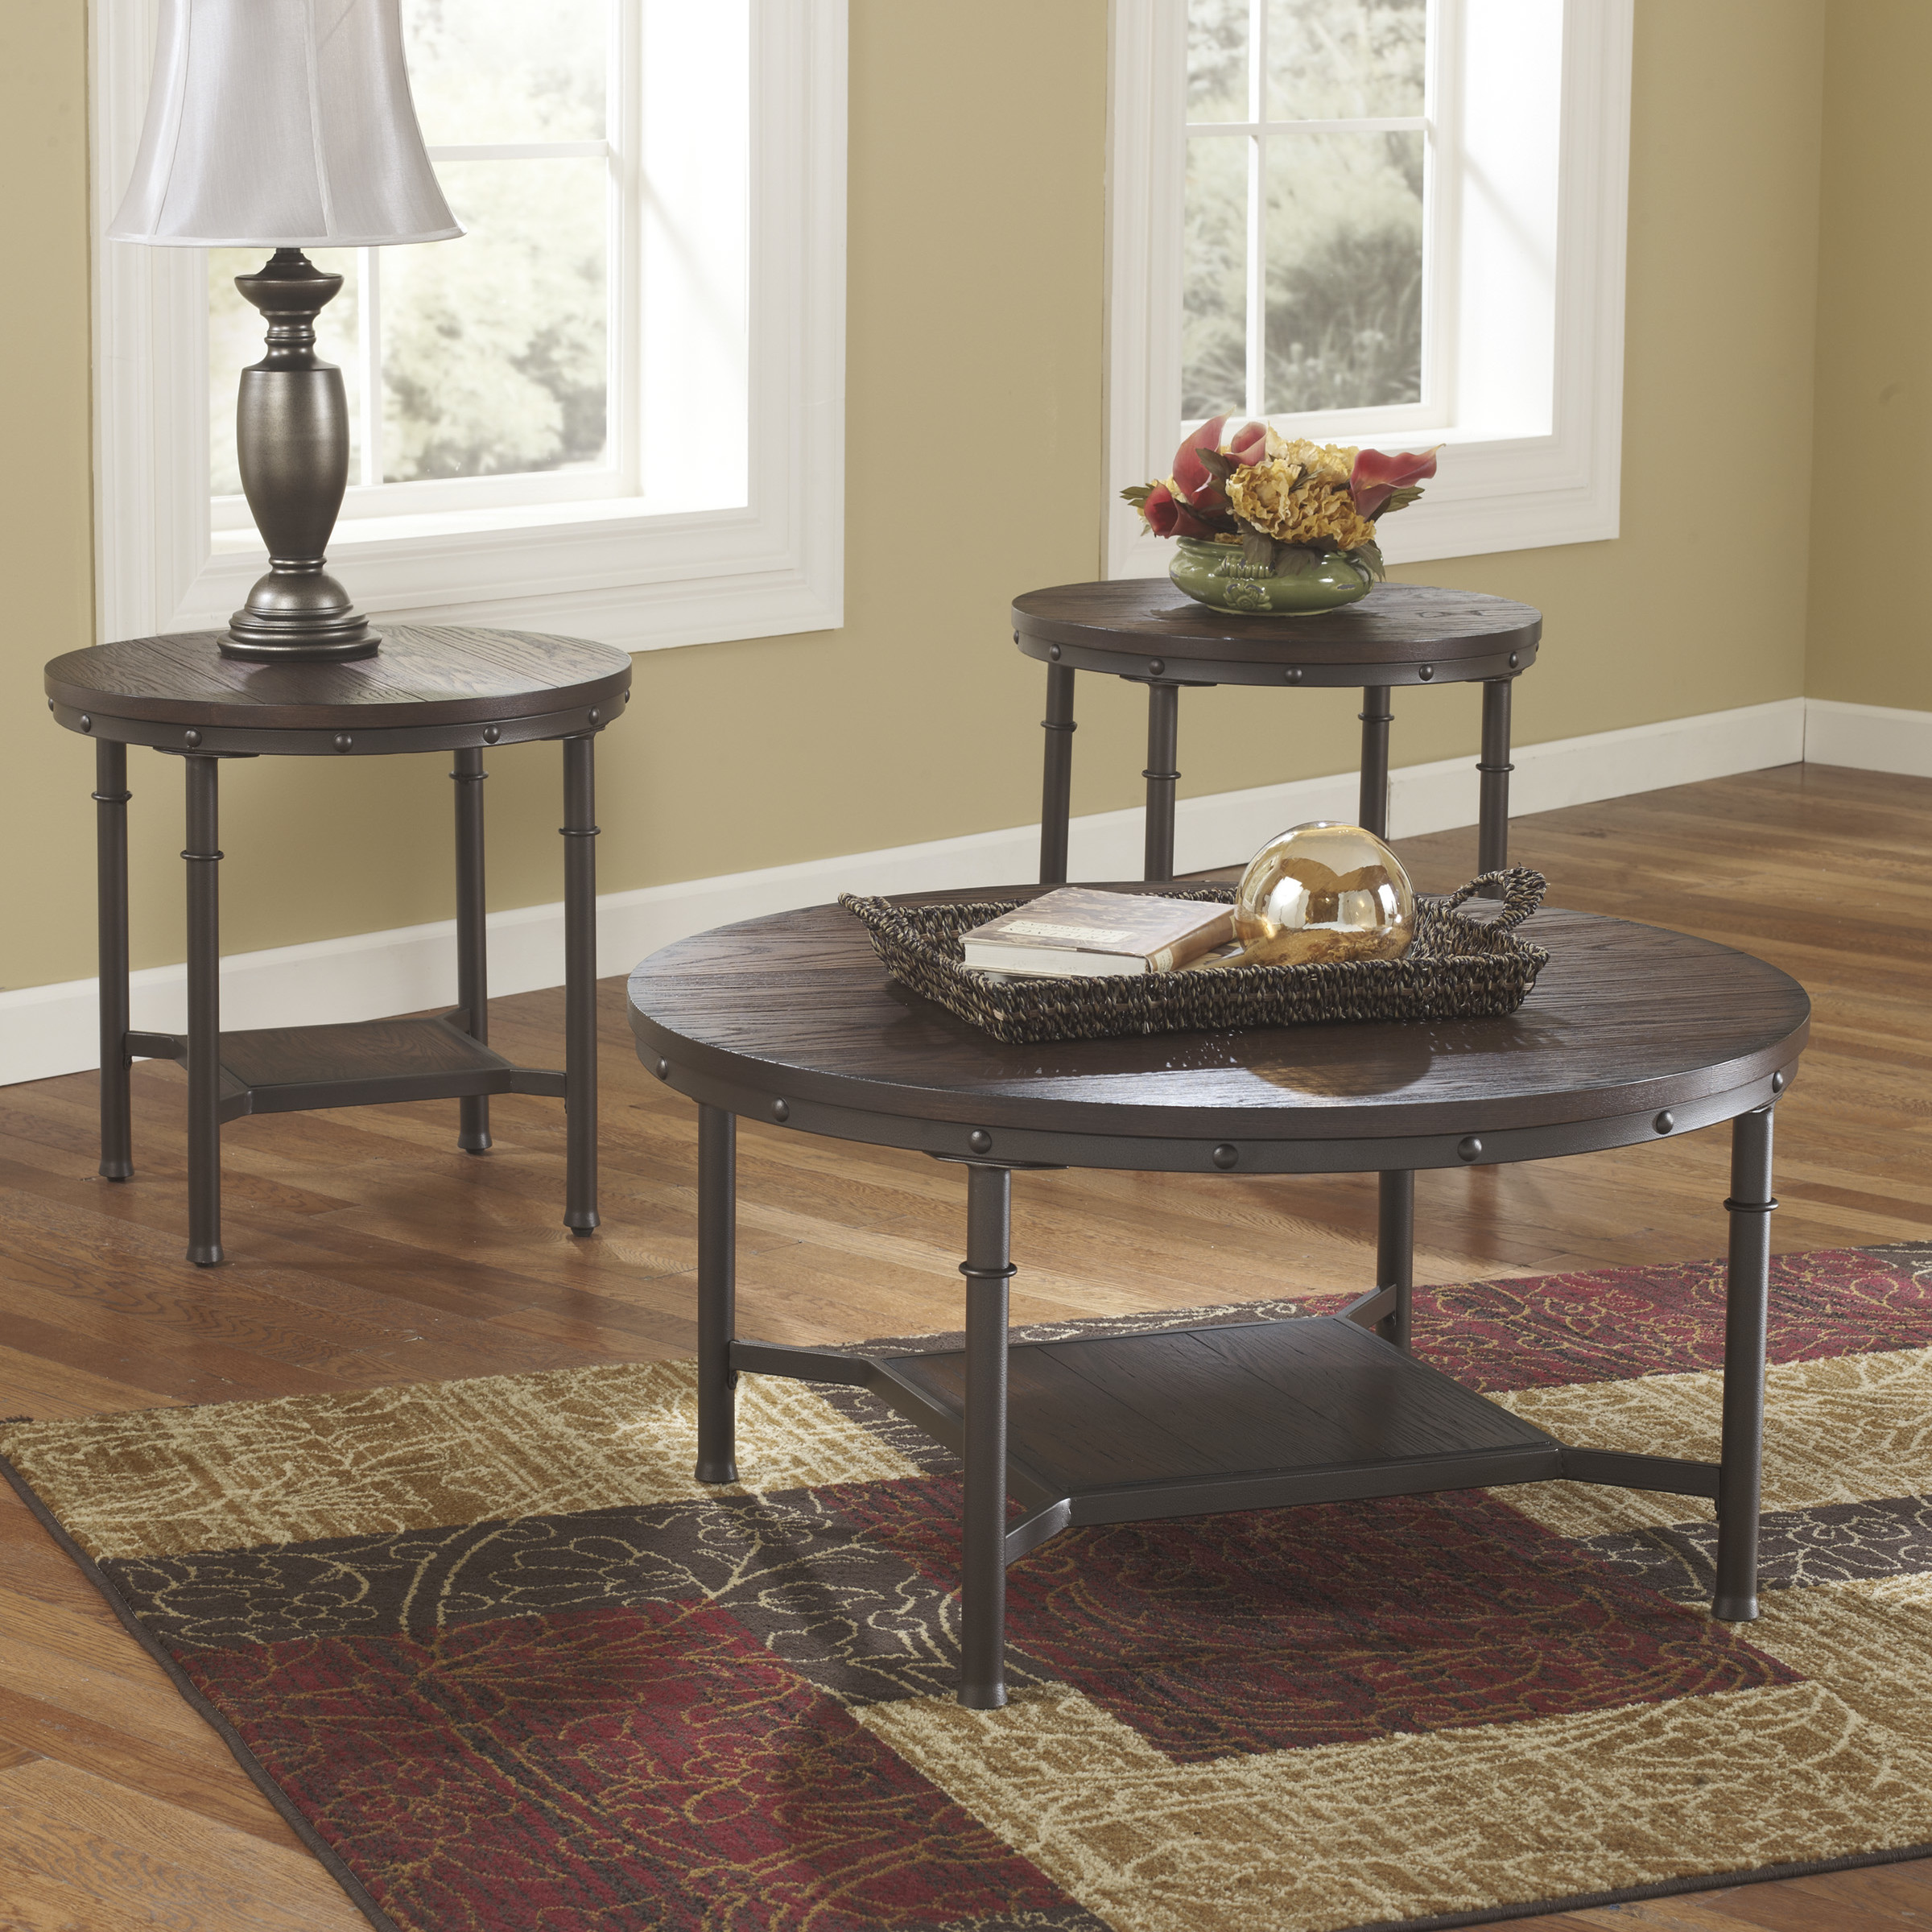 This modern mirrored coffee table picture uploaded by admin after - 10 Inspirations Of Round Coffee Table Sets For Sale